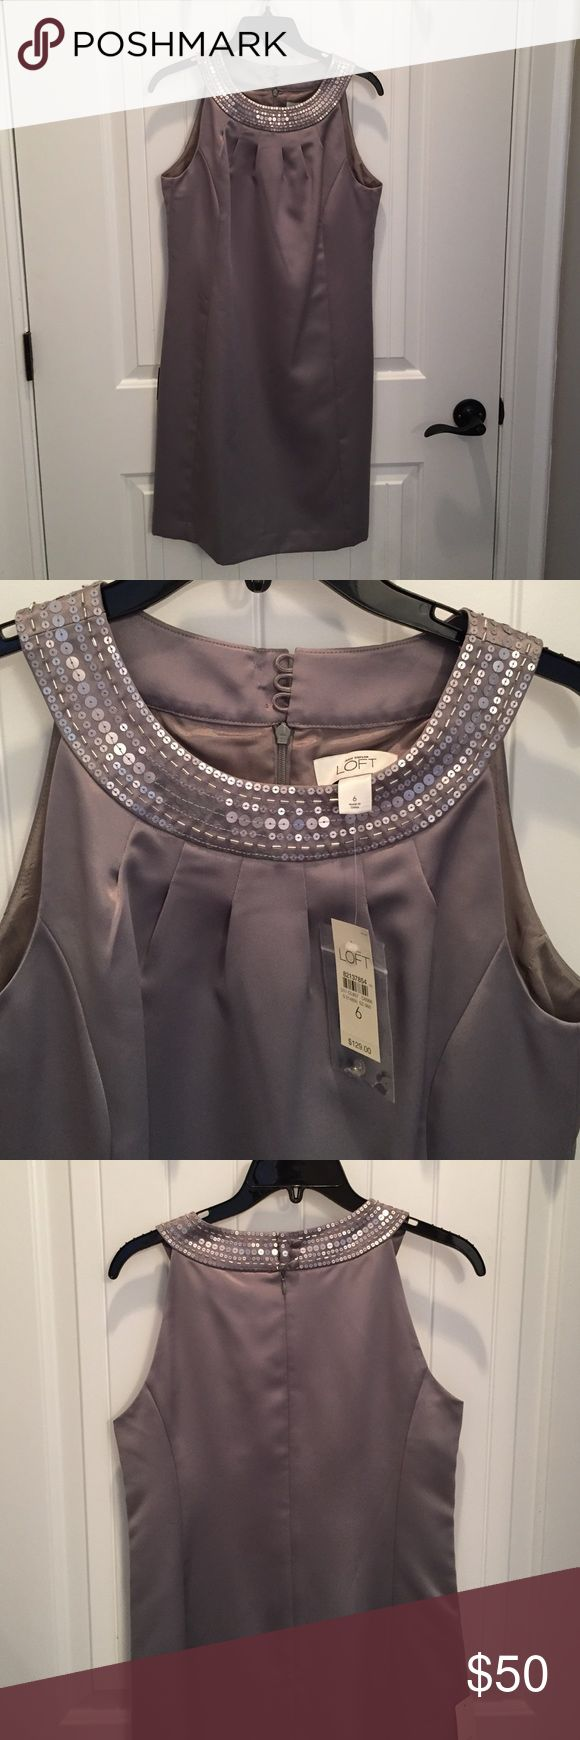 Ann Taylor Loft dress Silver/gray NWT Ann Taylor Loft cocktail dress. Great for holiday parties!  Sequin detail around neck. Sleeveless. Ann Taylor Dresses